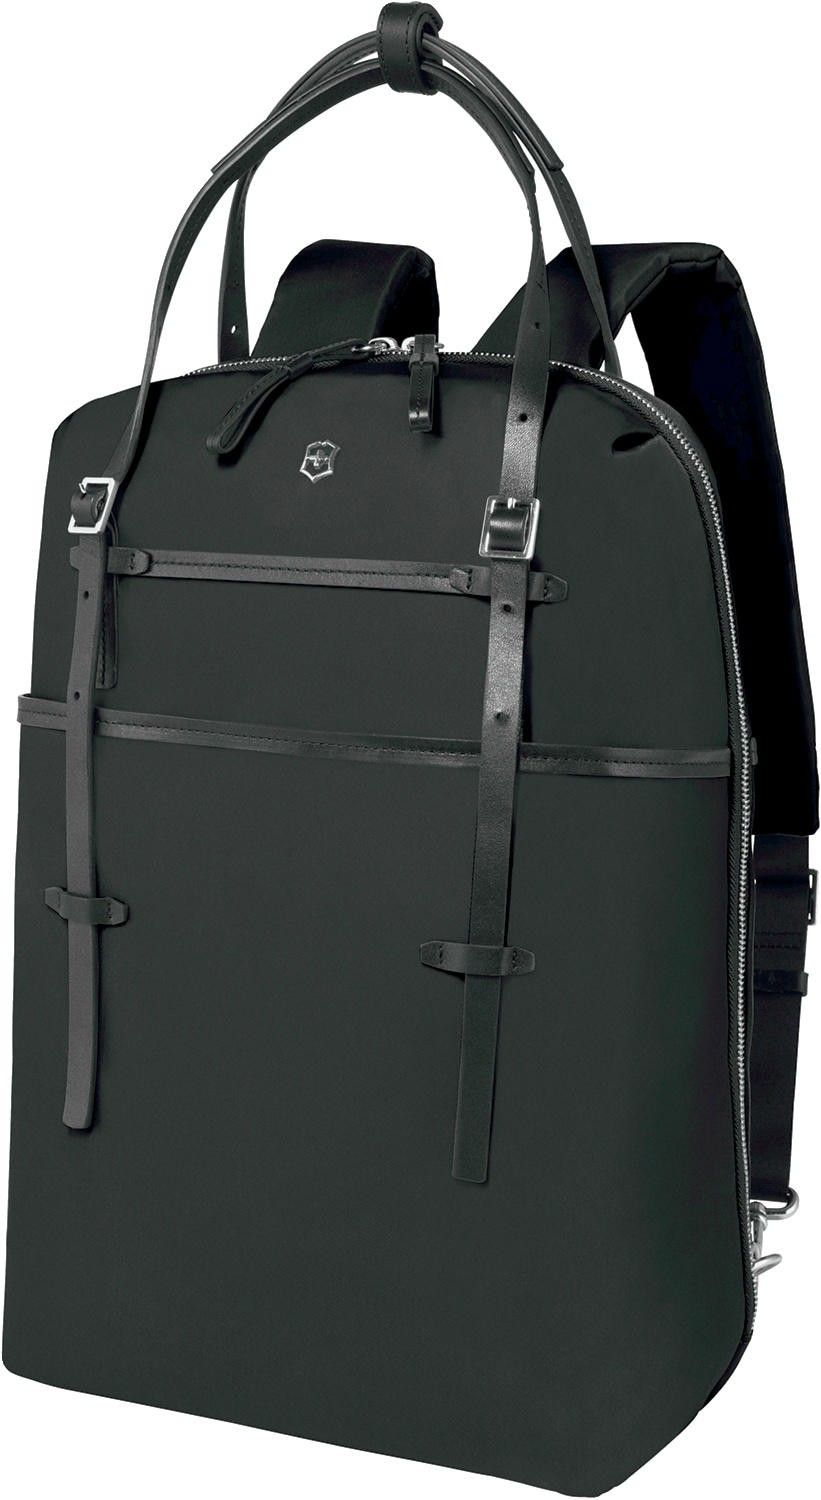 Victorinox Victoria Harmony 2 In 1 Convertible 15 6 Laptop Backpack Shoulder Bag With Tablet Pocket Luggage Pros